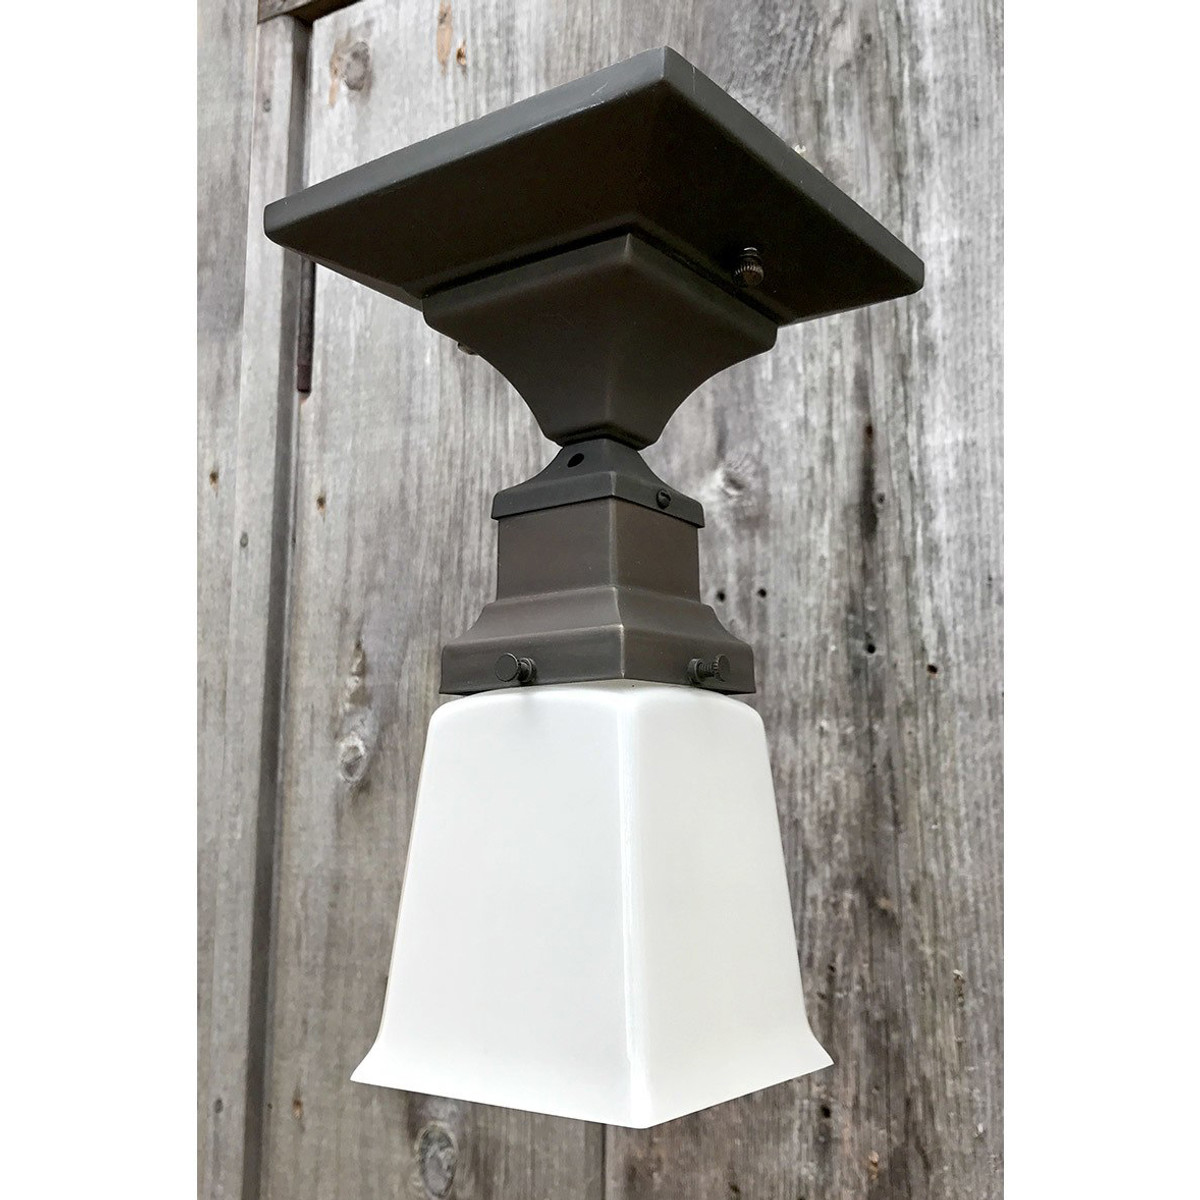 L17092 - Reproduction Arts & Crafts Flush Mount Fixture